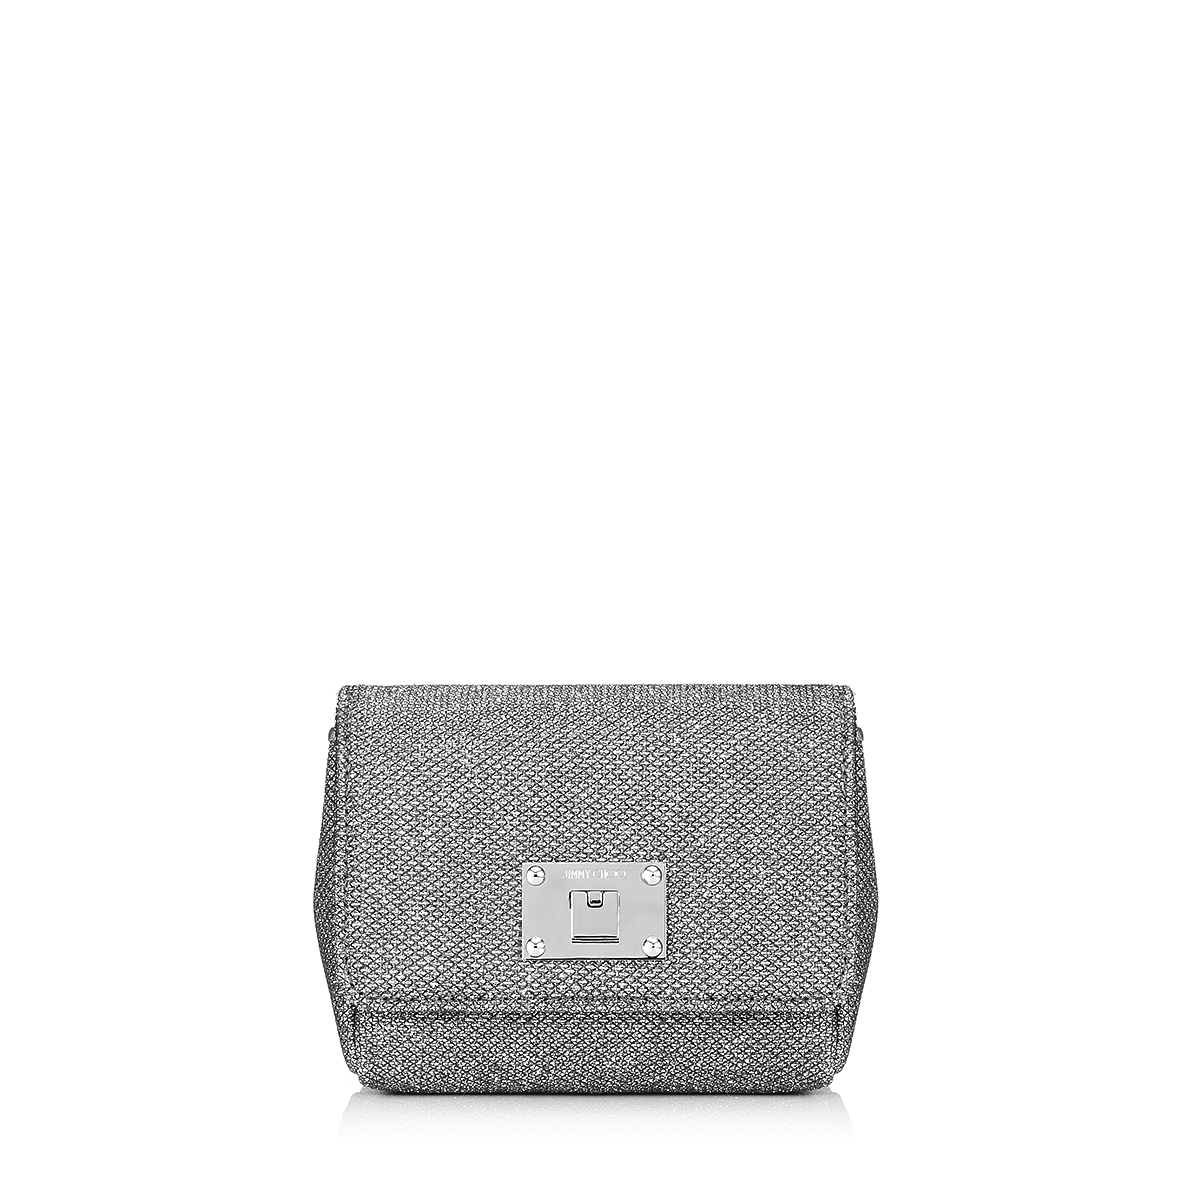 RUBY Anthracite Lamé Glitter Fabric Clutch bag with Chain Shoulder Strap